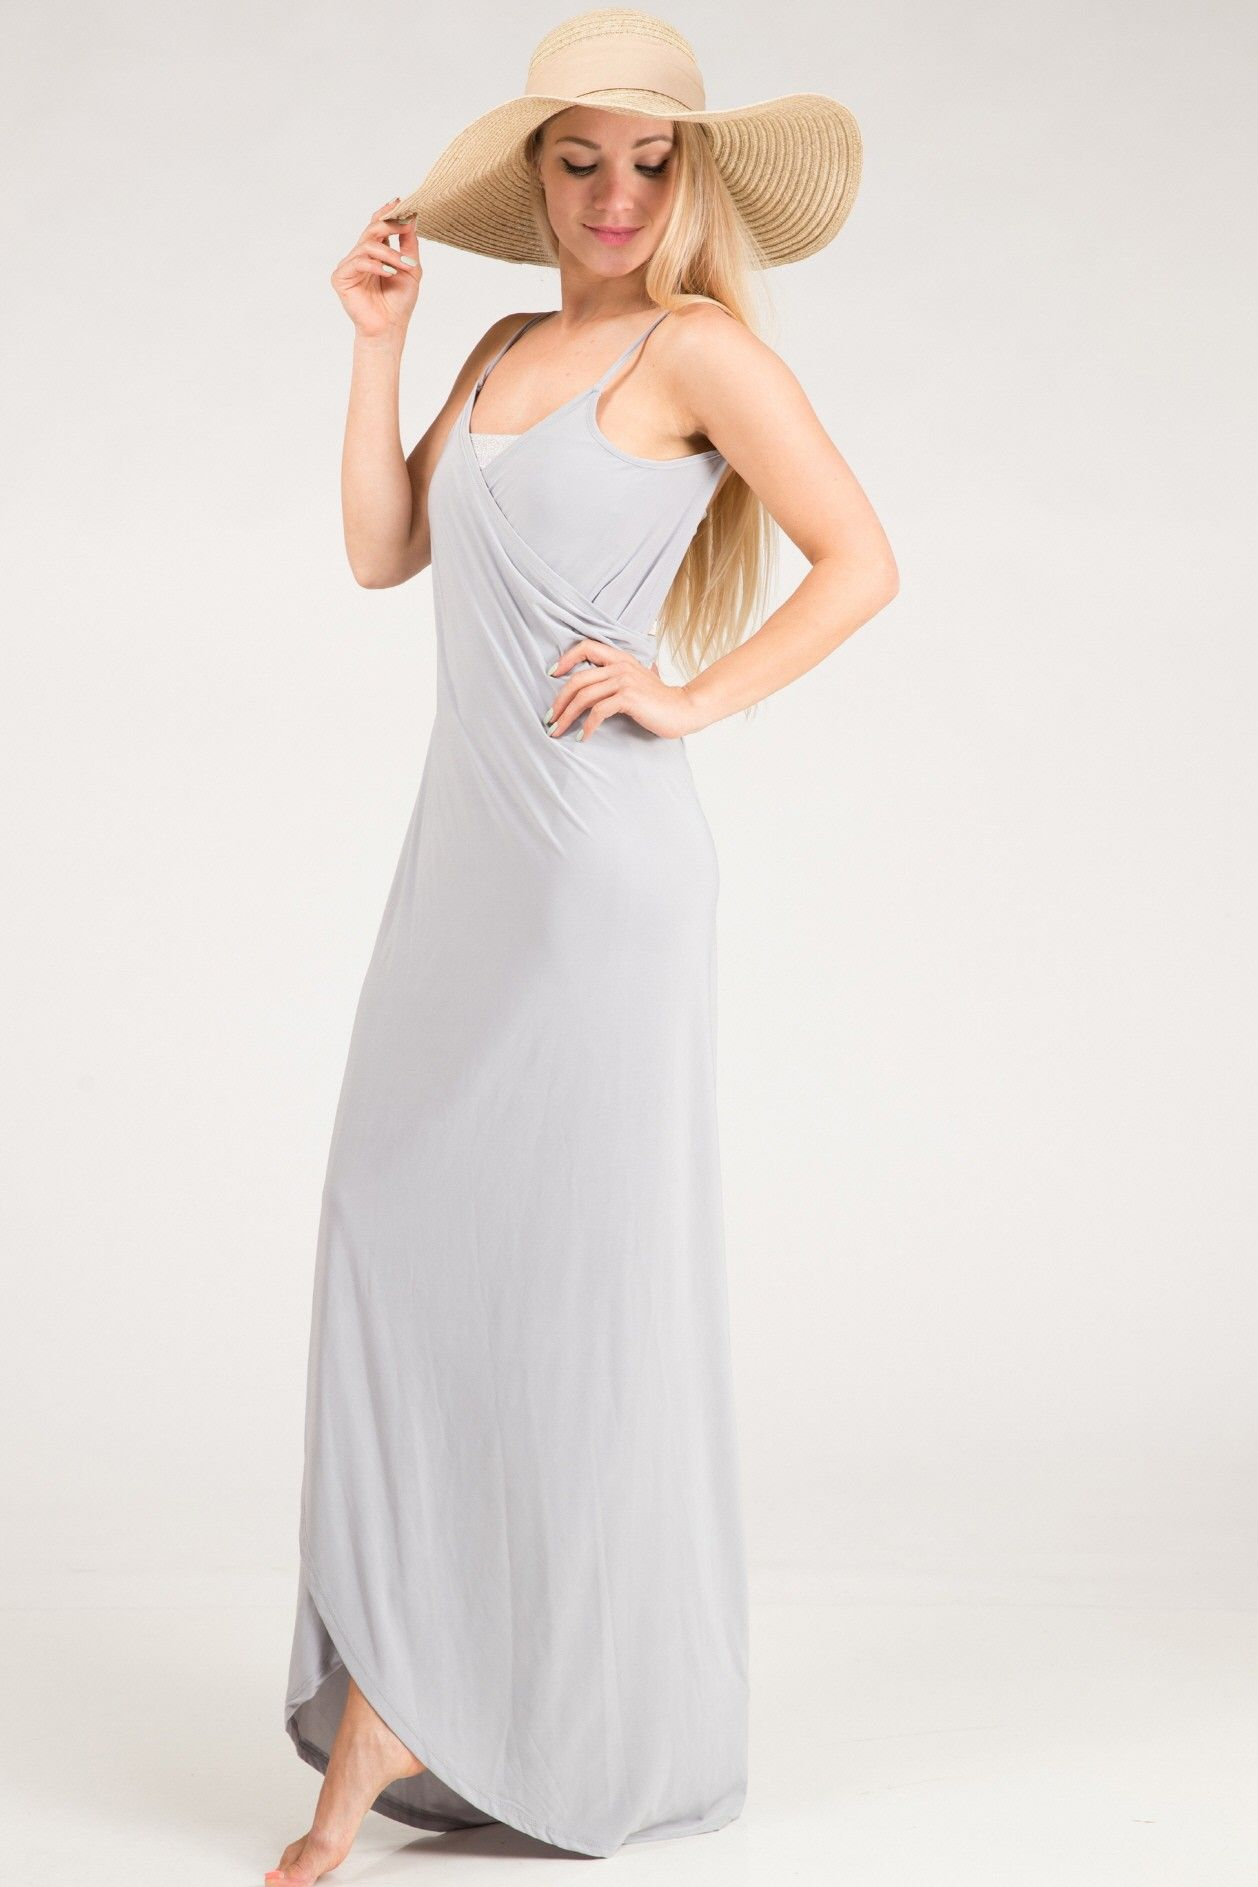 Silver Cover Up Maxi Dress | Dresses | Pinterest